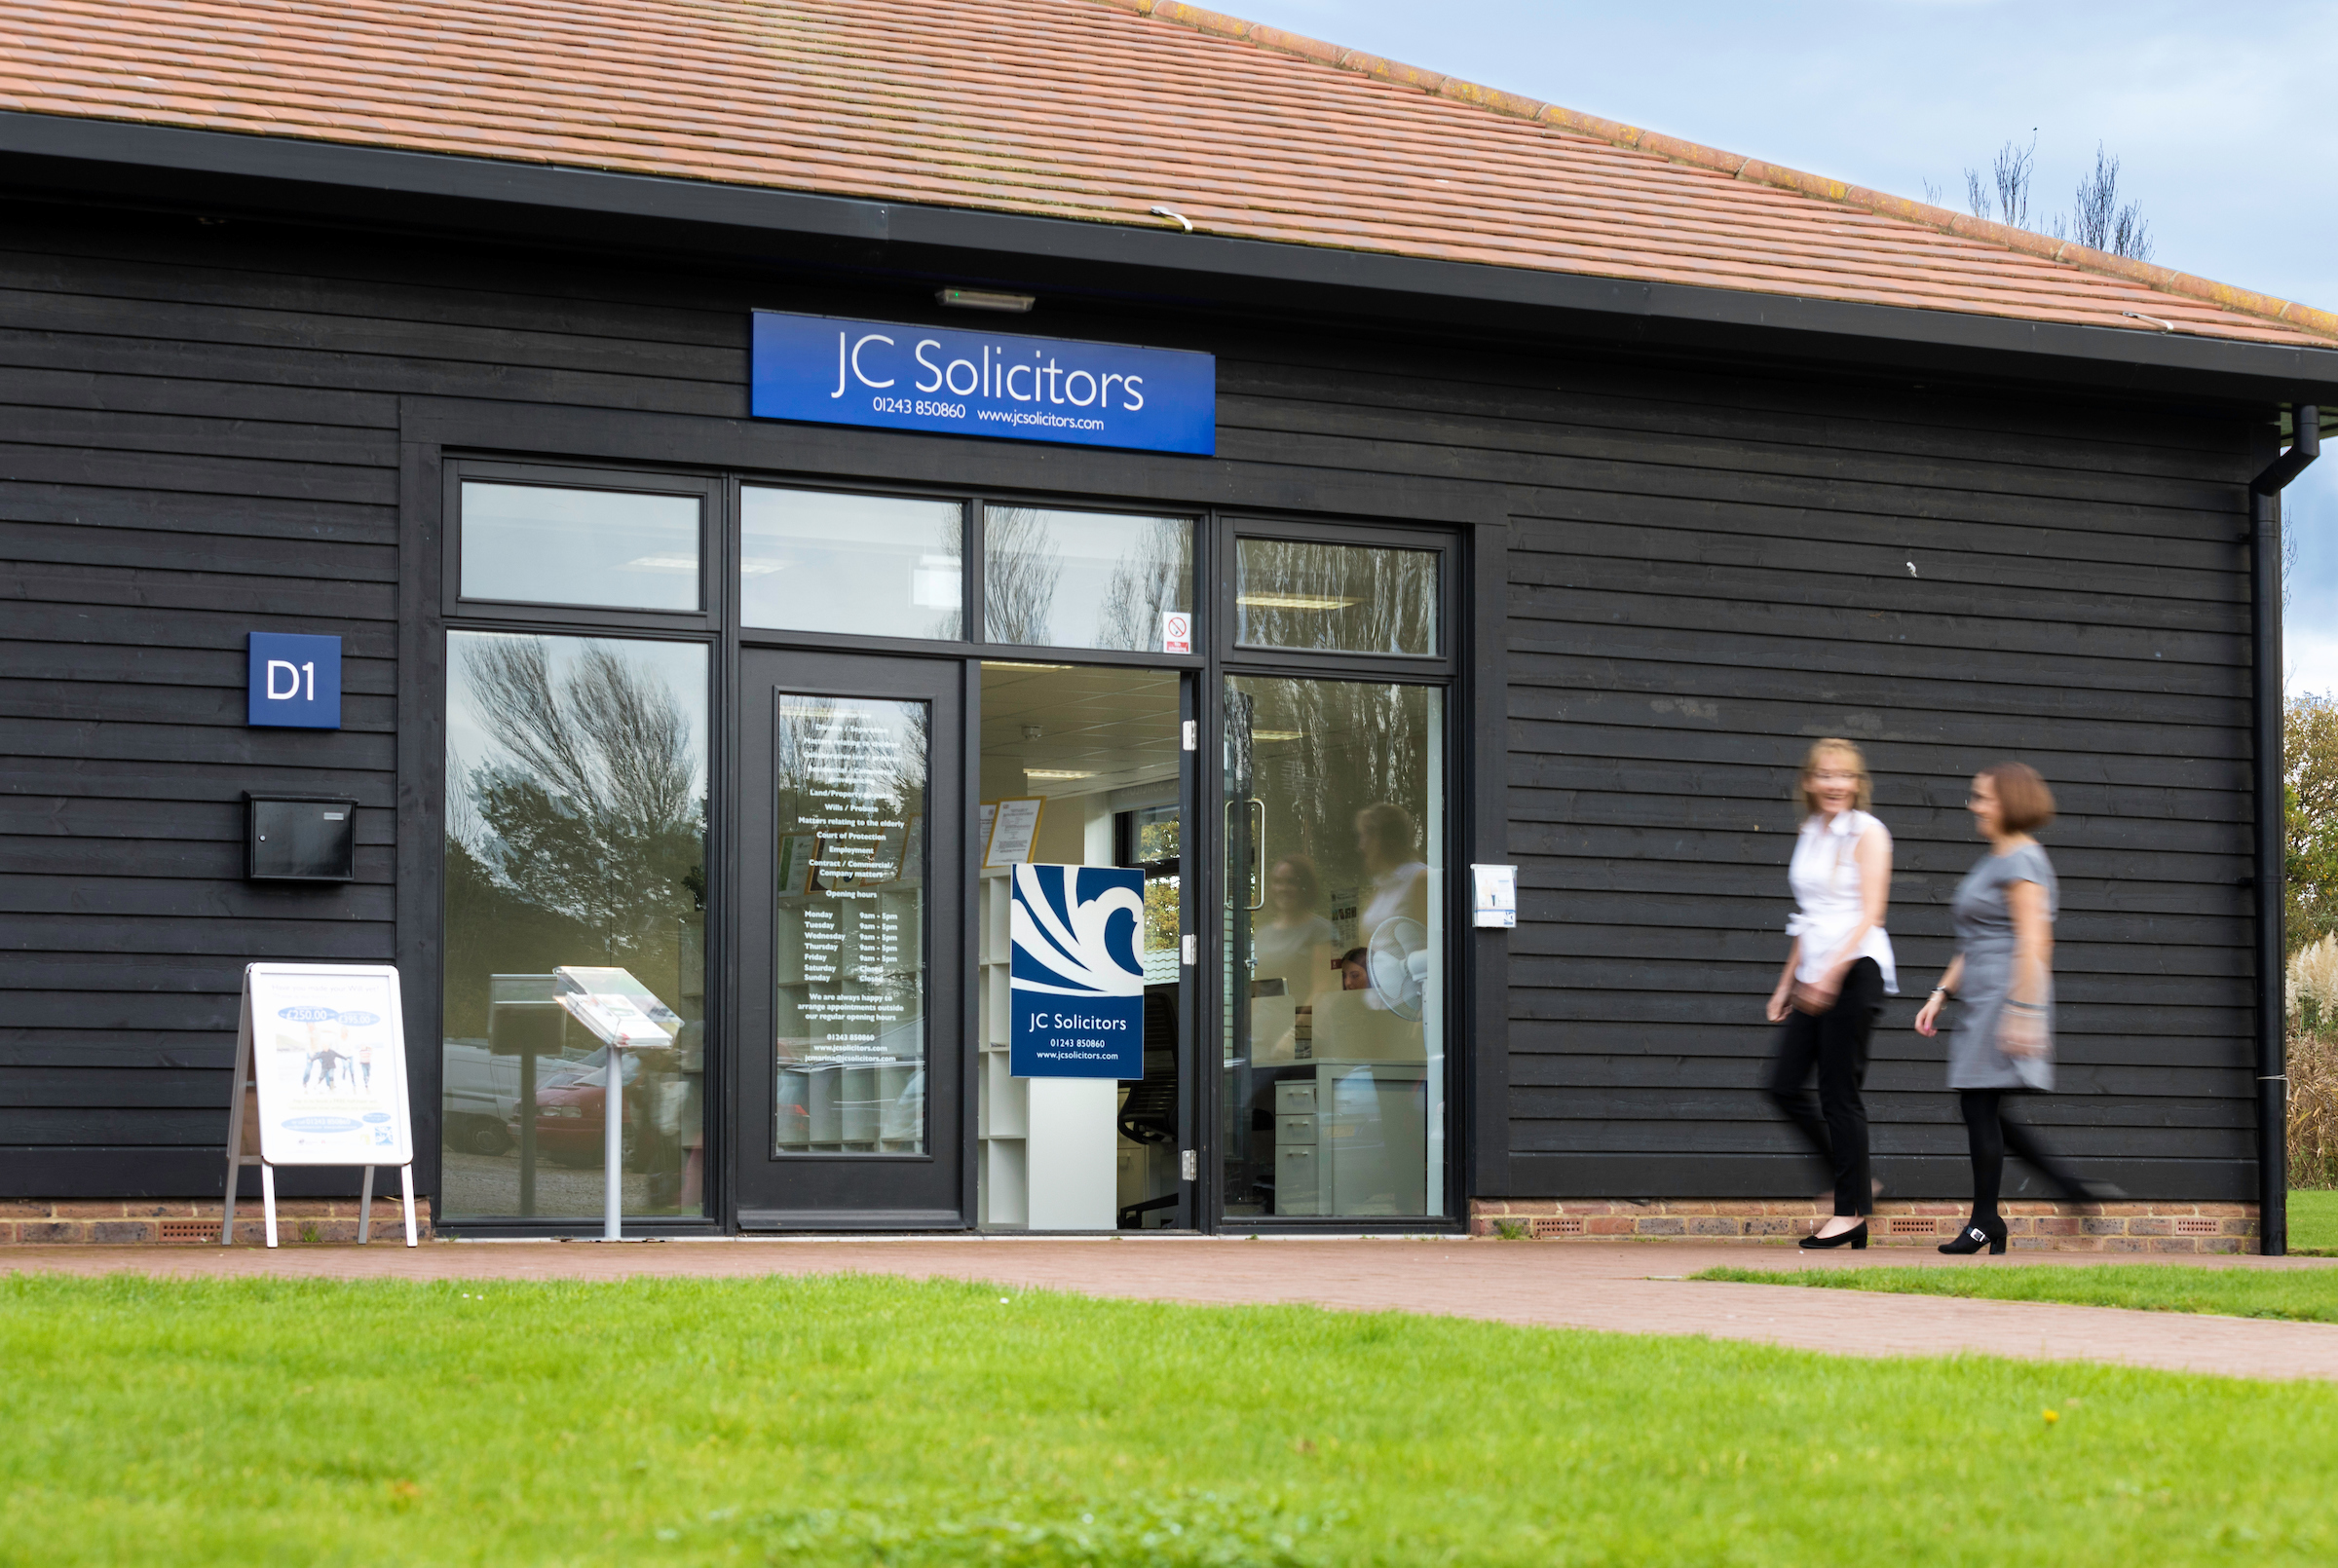 JC Solicitors offices. Chichester Marina, West Sussex